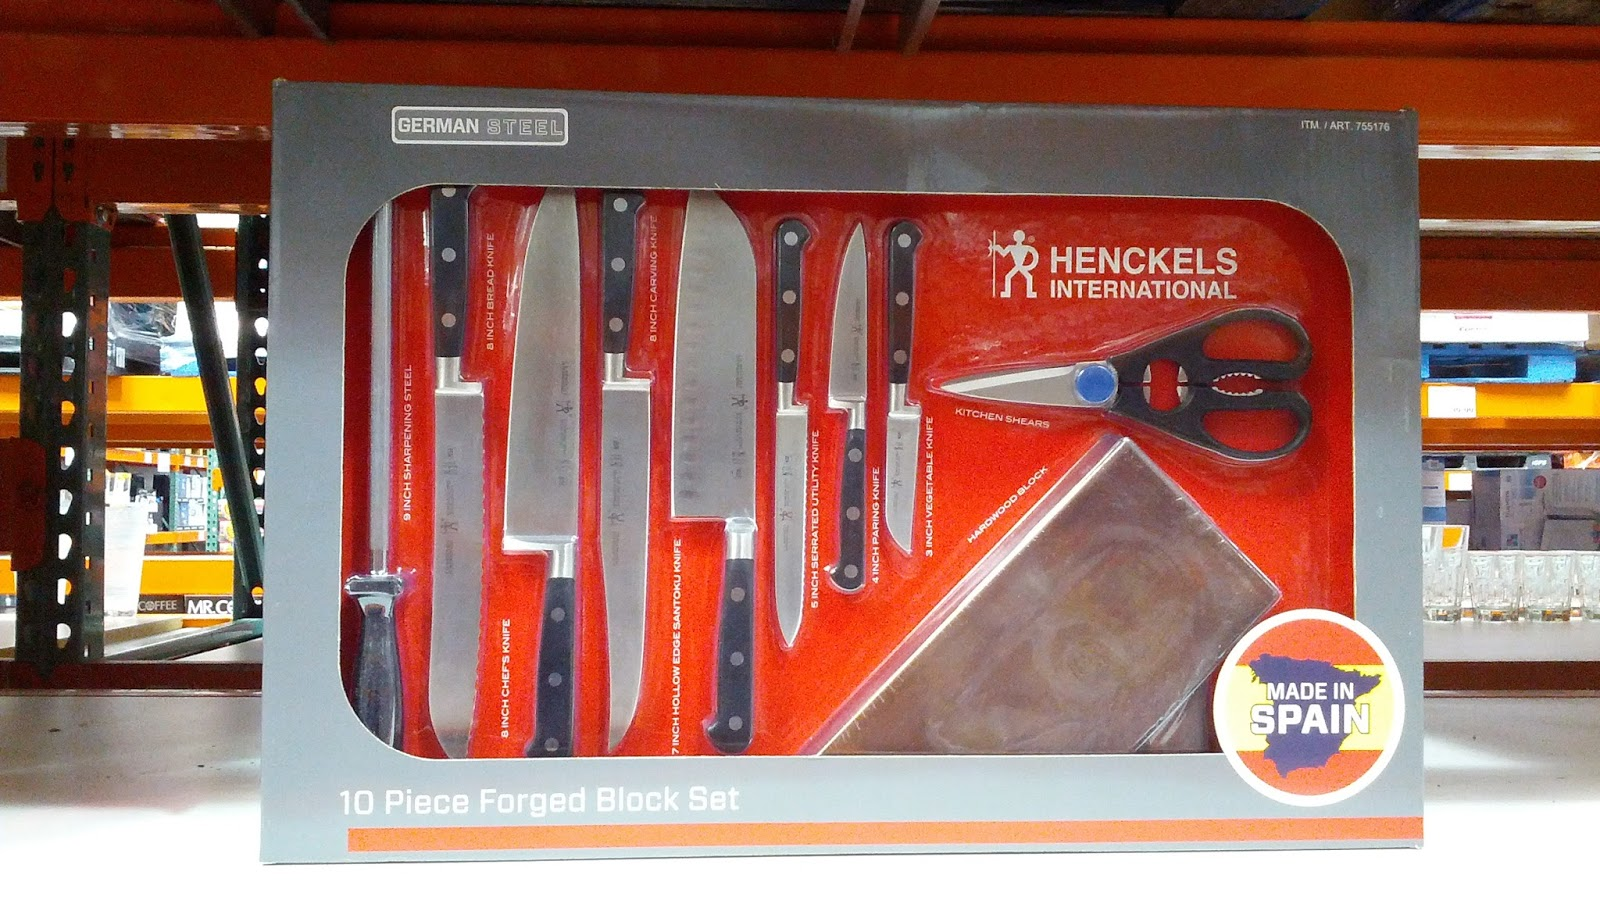 j a henckels 10 piece forged cutlery block set of knives costco j a henckels 10 piece knife set for cooking and food prep